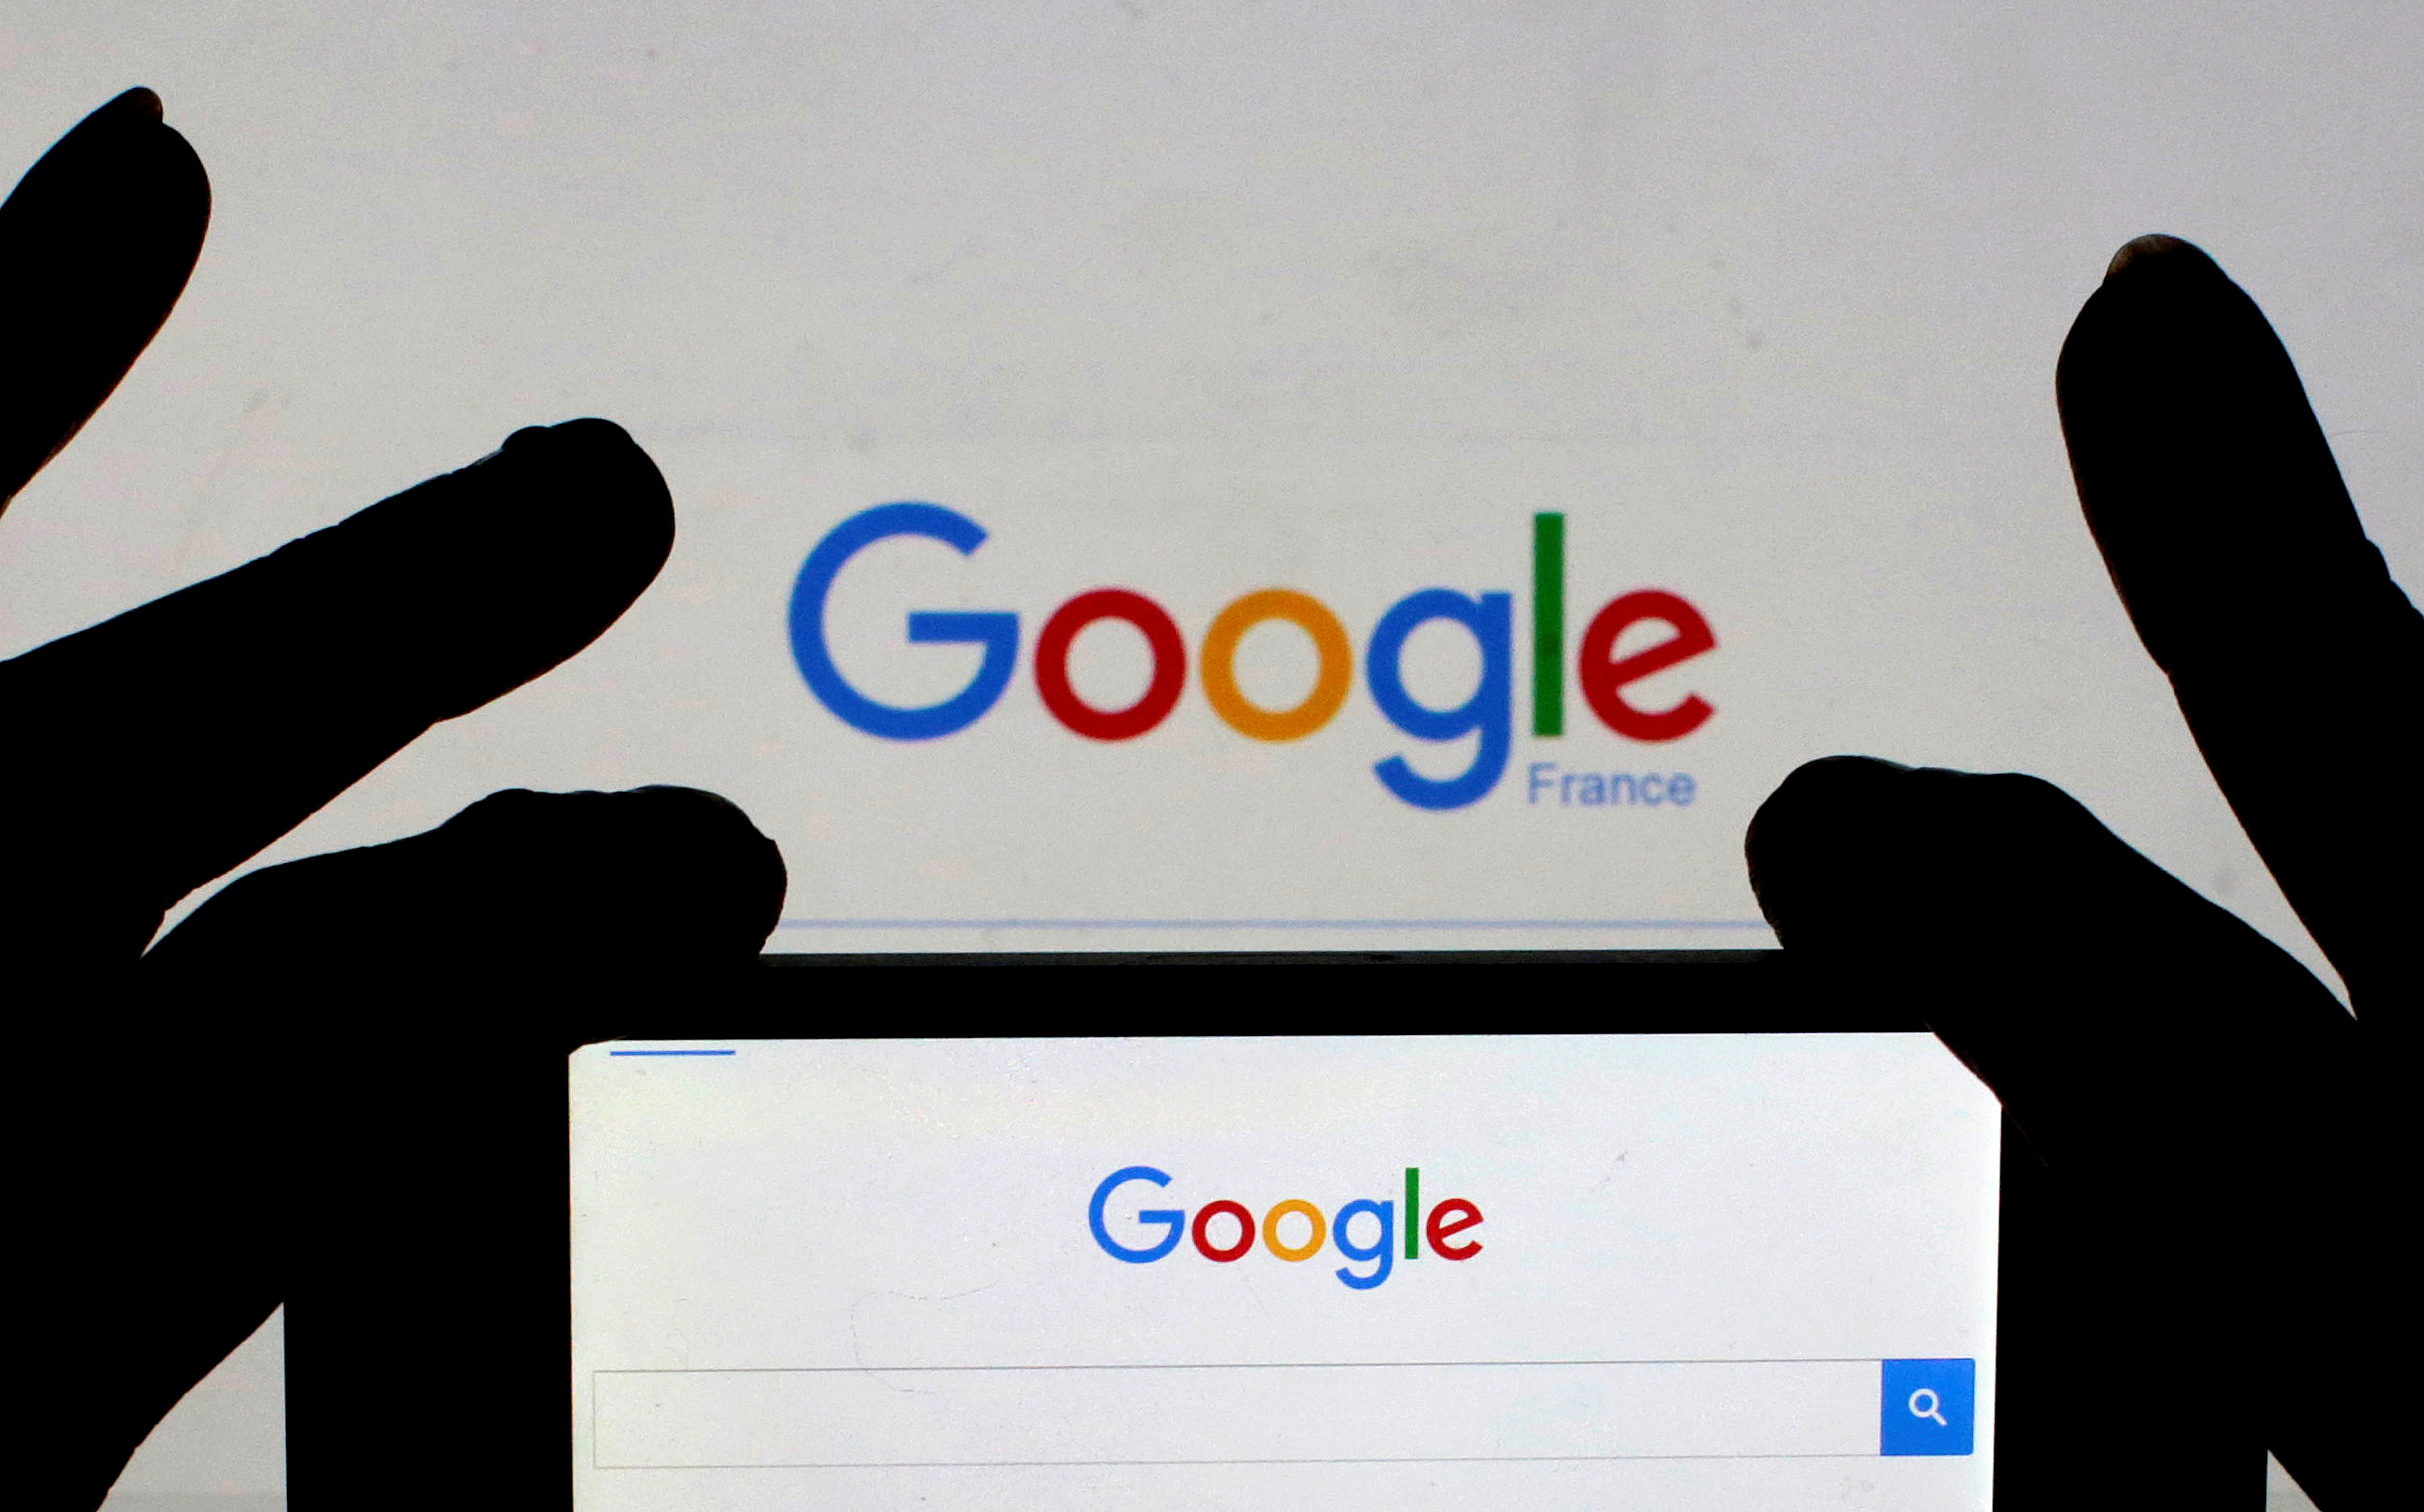 Google refuses to pay publishers in France under first 'link tax' legislation